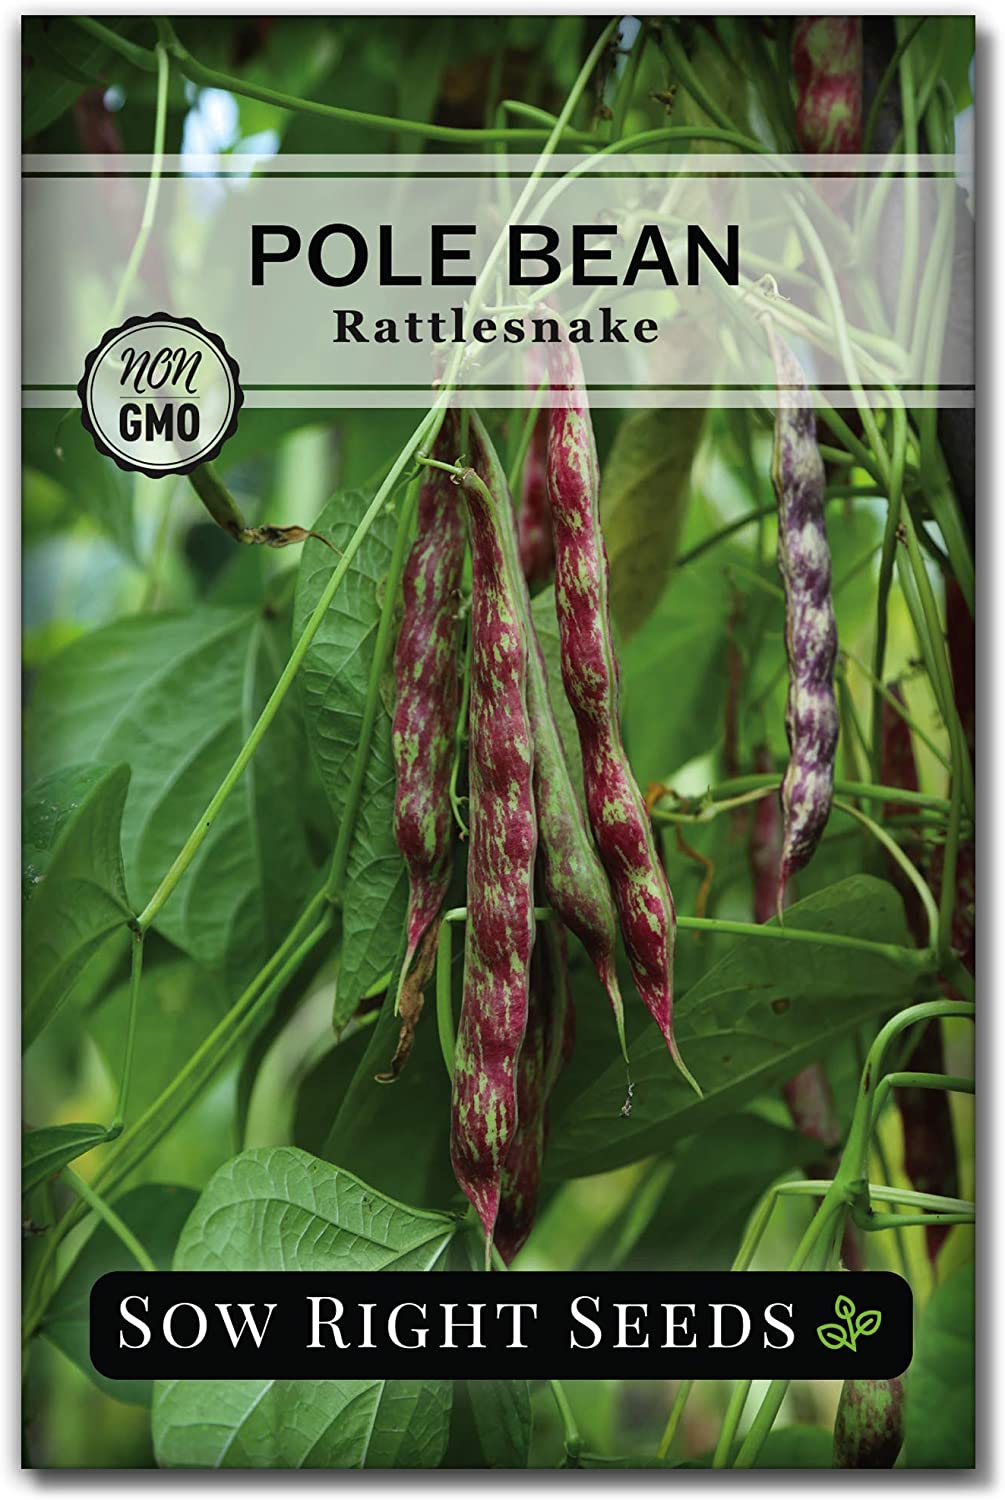 Sow Right Seeds - Rattlesnake Pole Bean Seed for Planting - Non-GMO Heirloom Packet with Instructions to Plant a Home Vegetable Garden